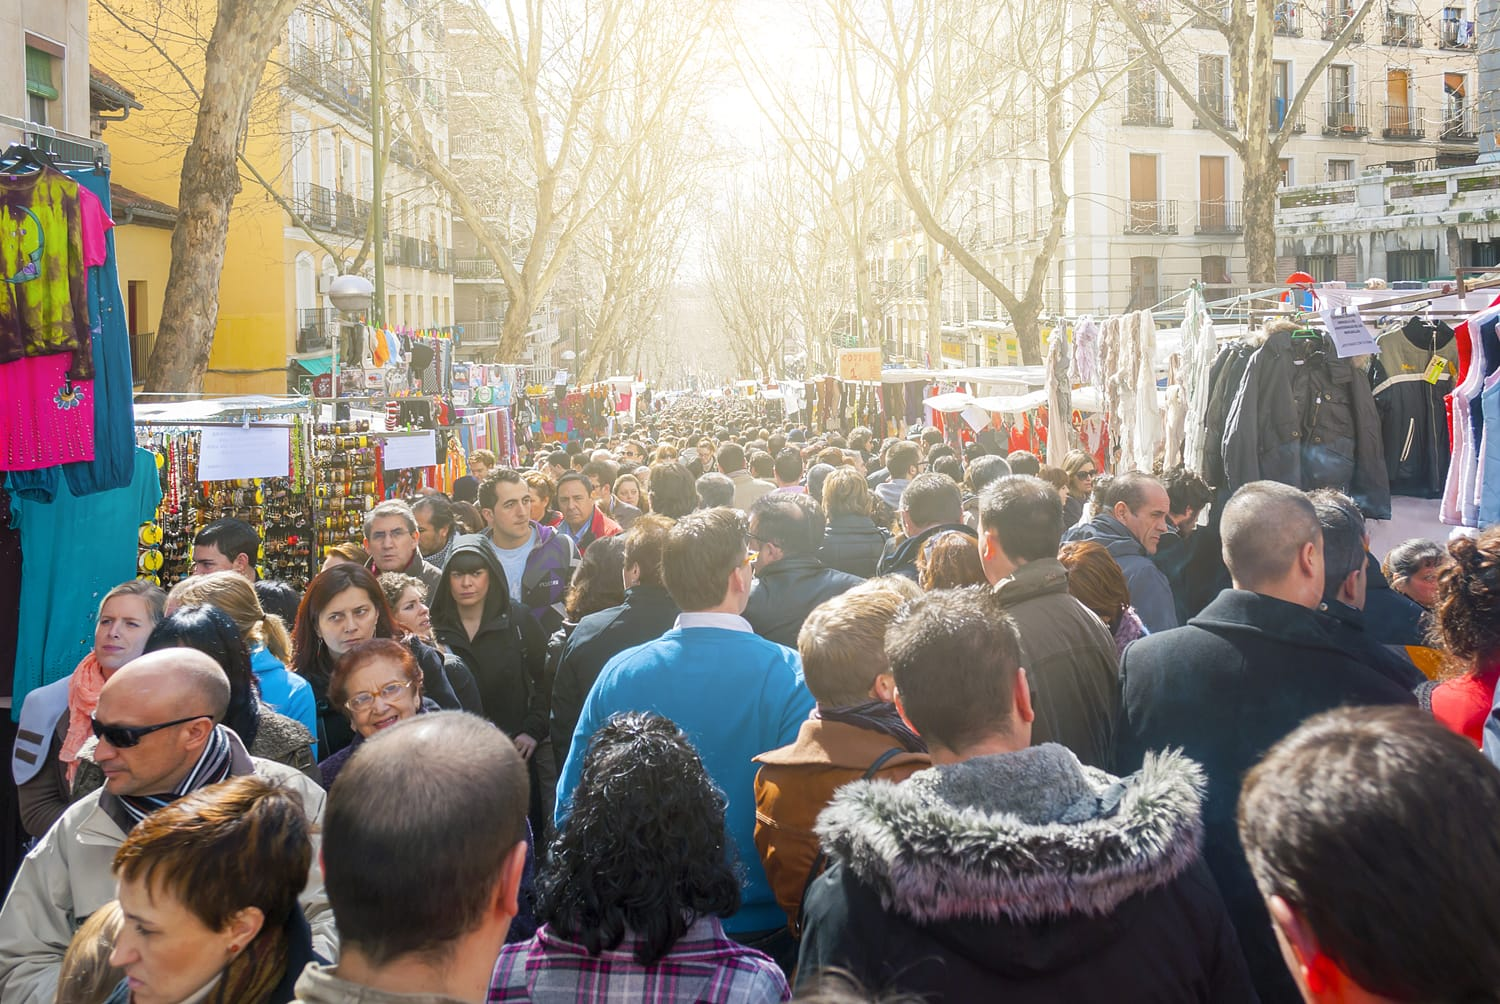 Scene from El Rastro flea market in Madrid, Spain.